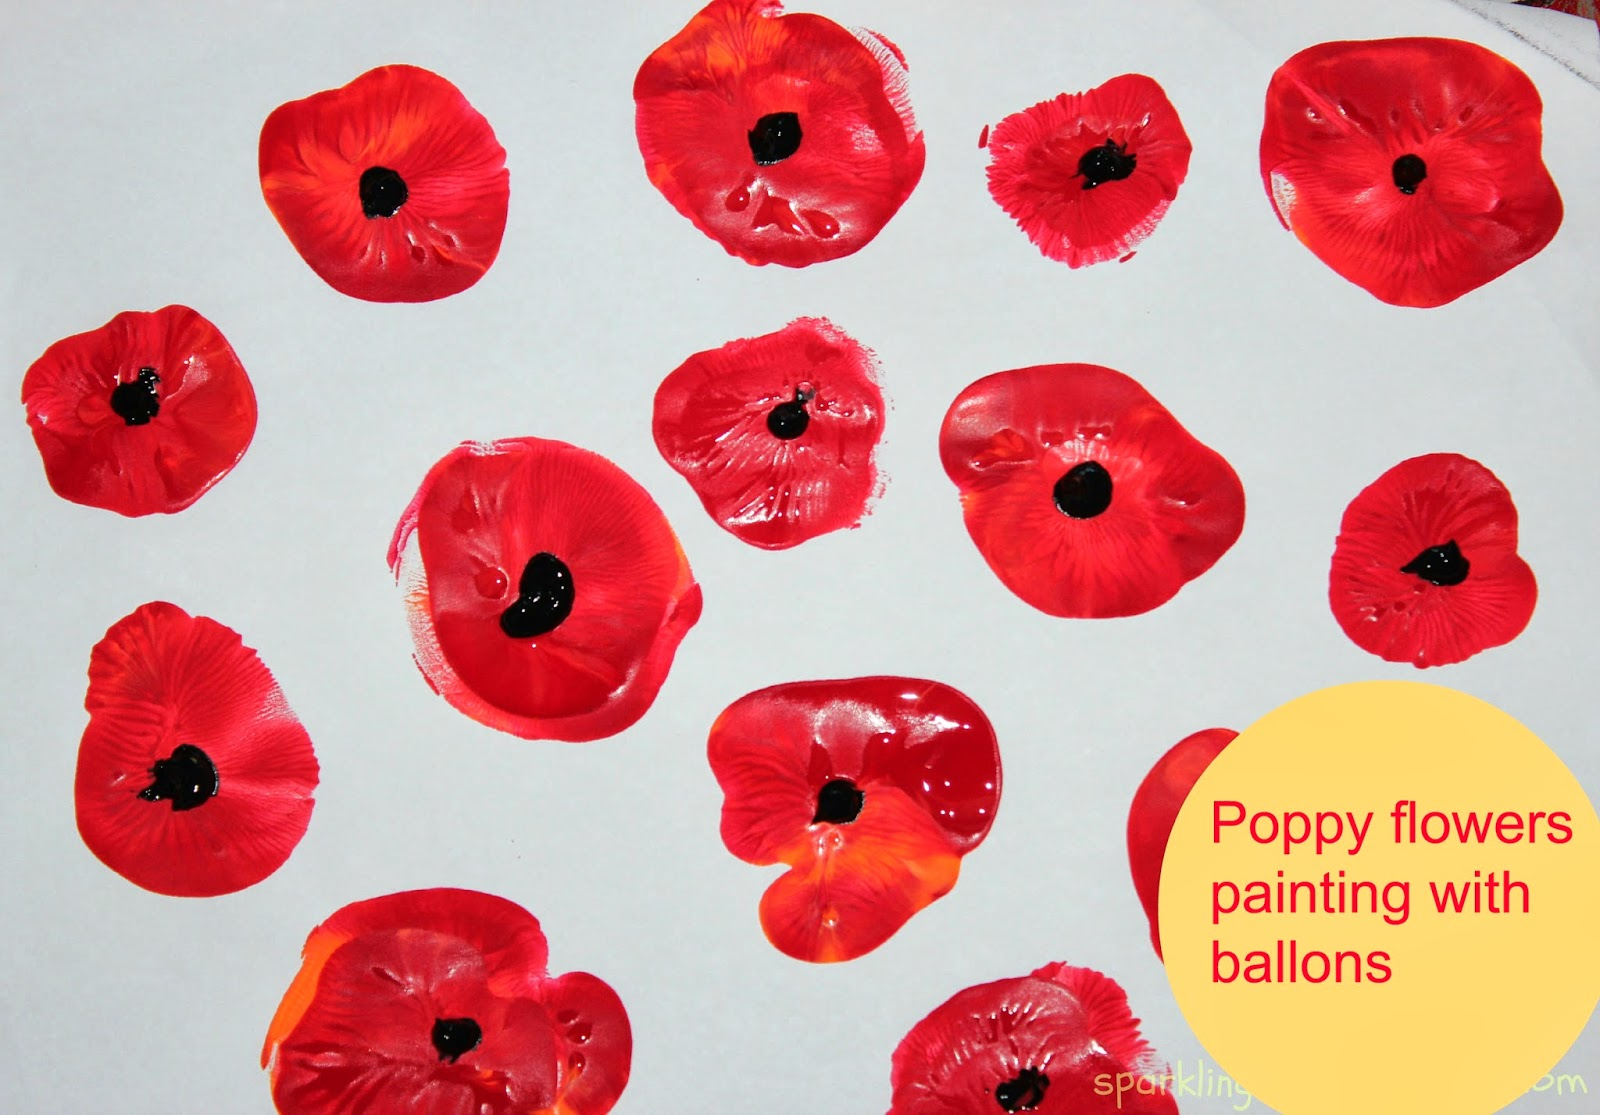 Poppy flowers painting with kids sparklingbuds - How to paint poppy flowers ...